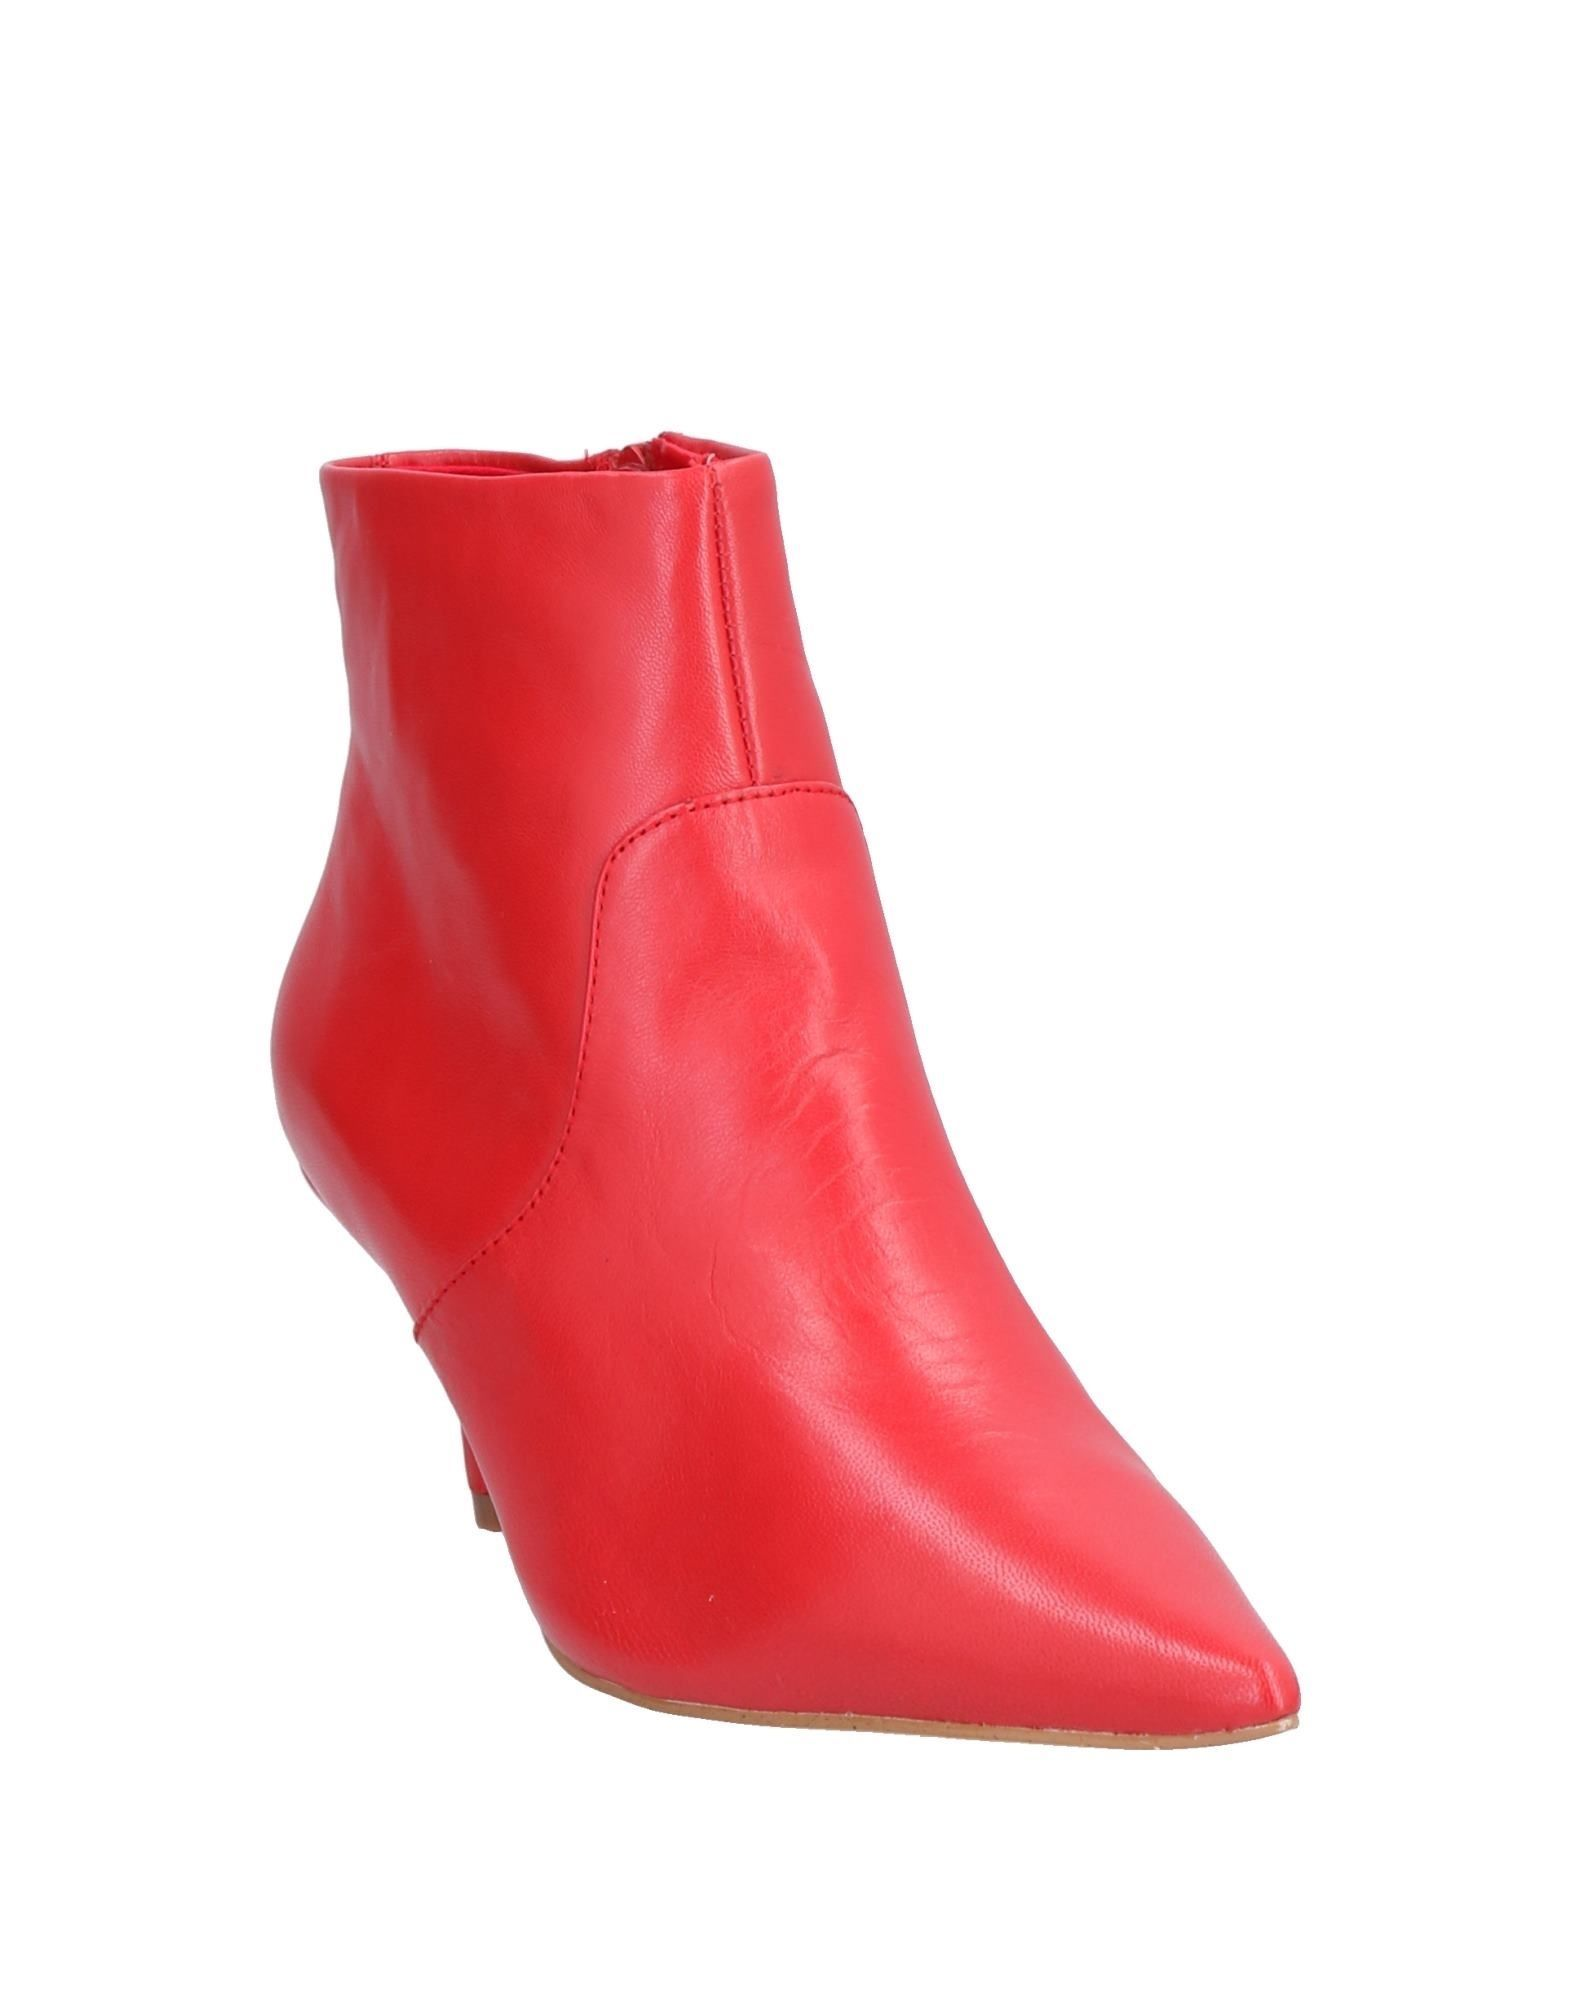 Steve Madden Red Leather Ankle Boots